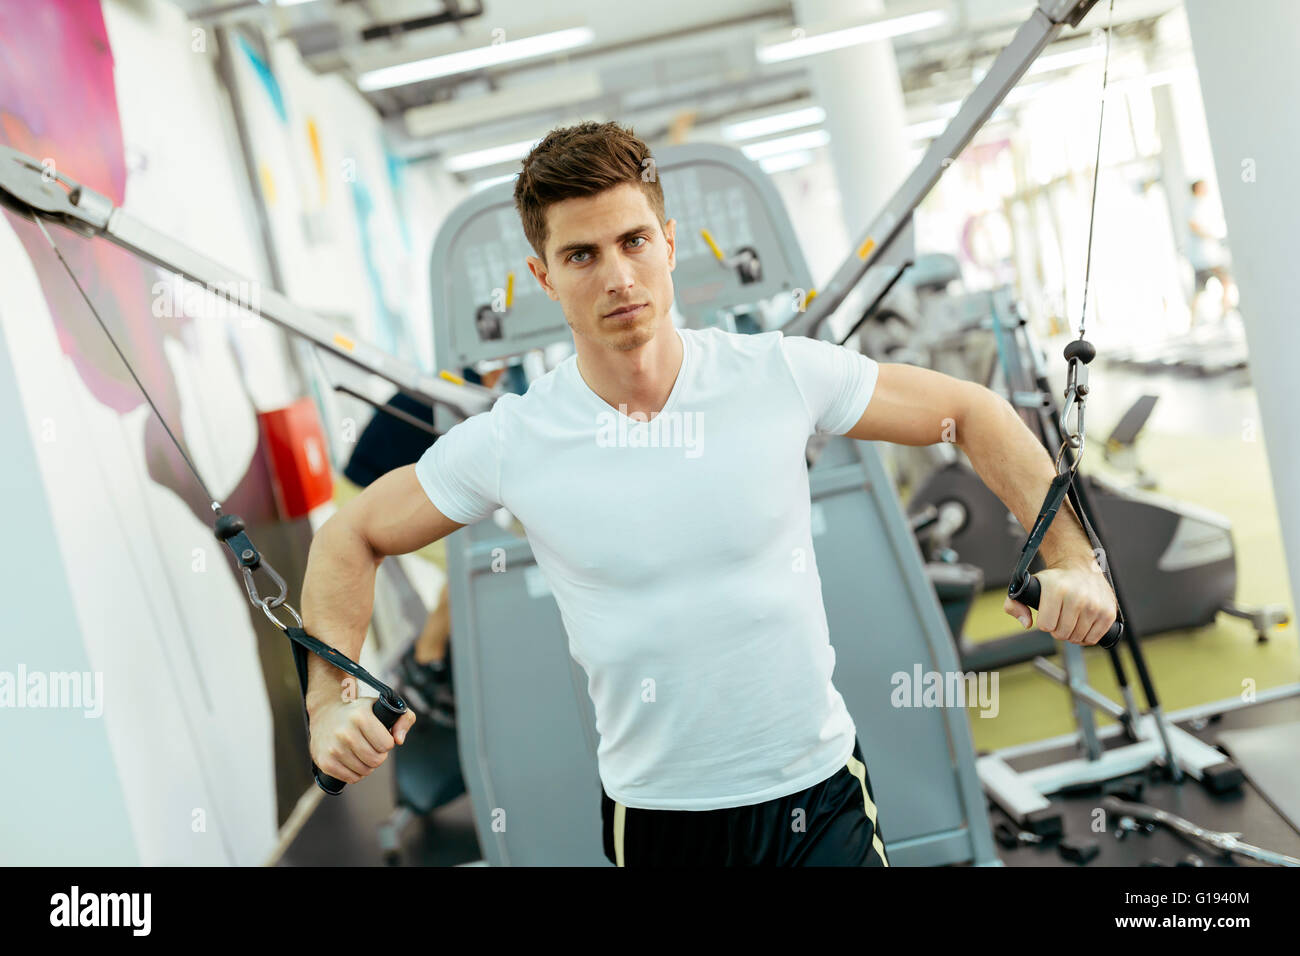 Handsome man training in clean modern gym on various machines Stock Photo